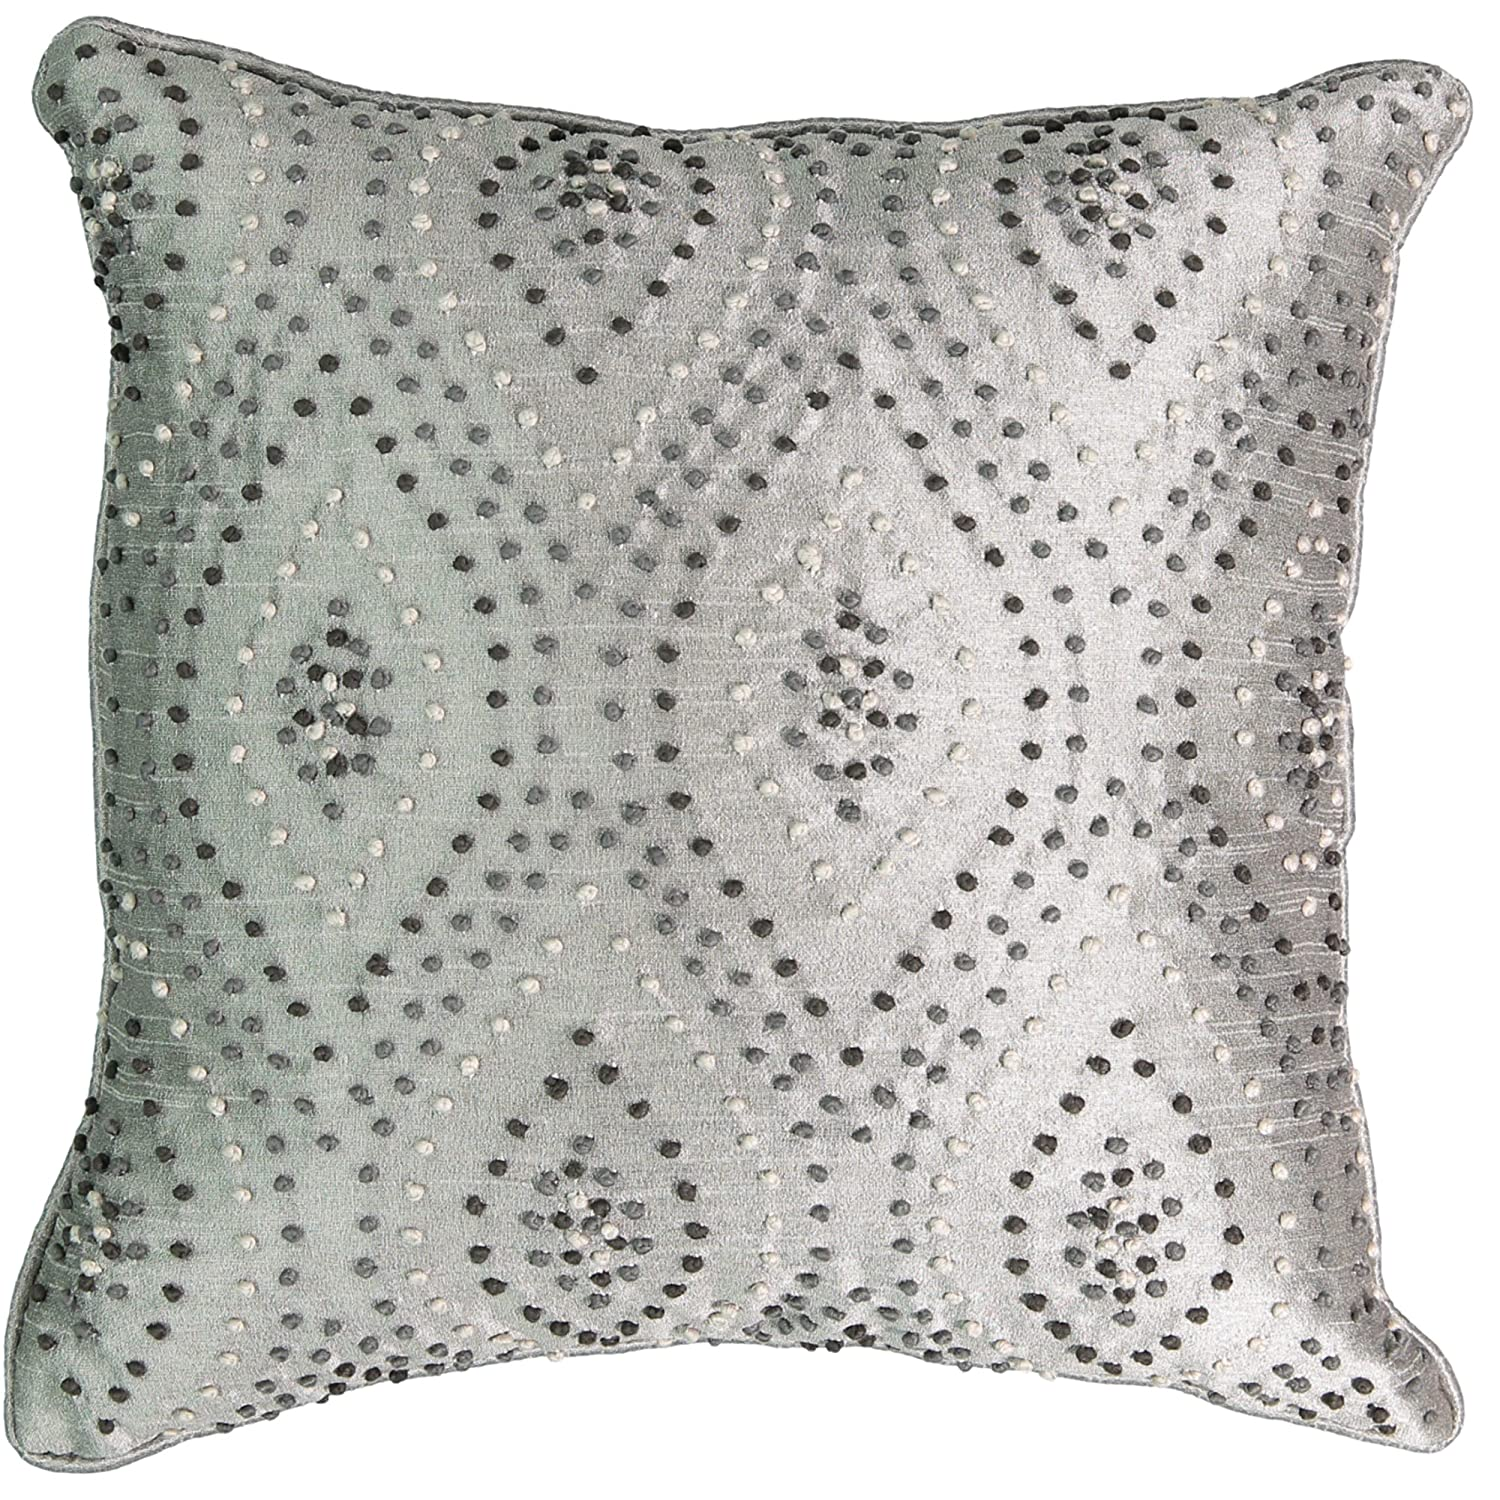 Beautyrest Chacenay Knotted Decorative Pillow 16 x 16 Paloma Grey Ellery Homestyles 16327016X016PGA